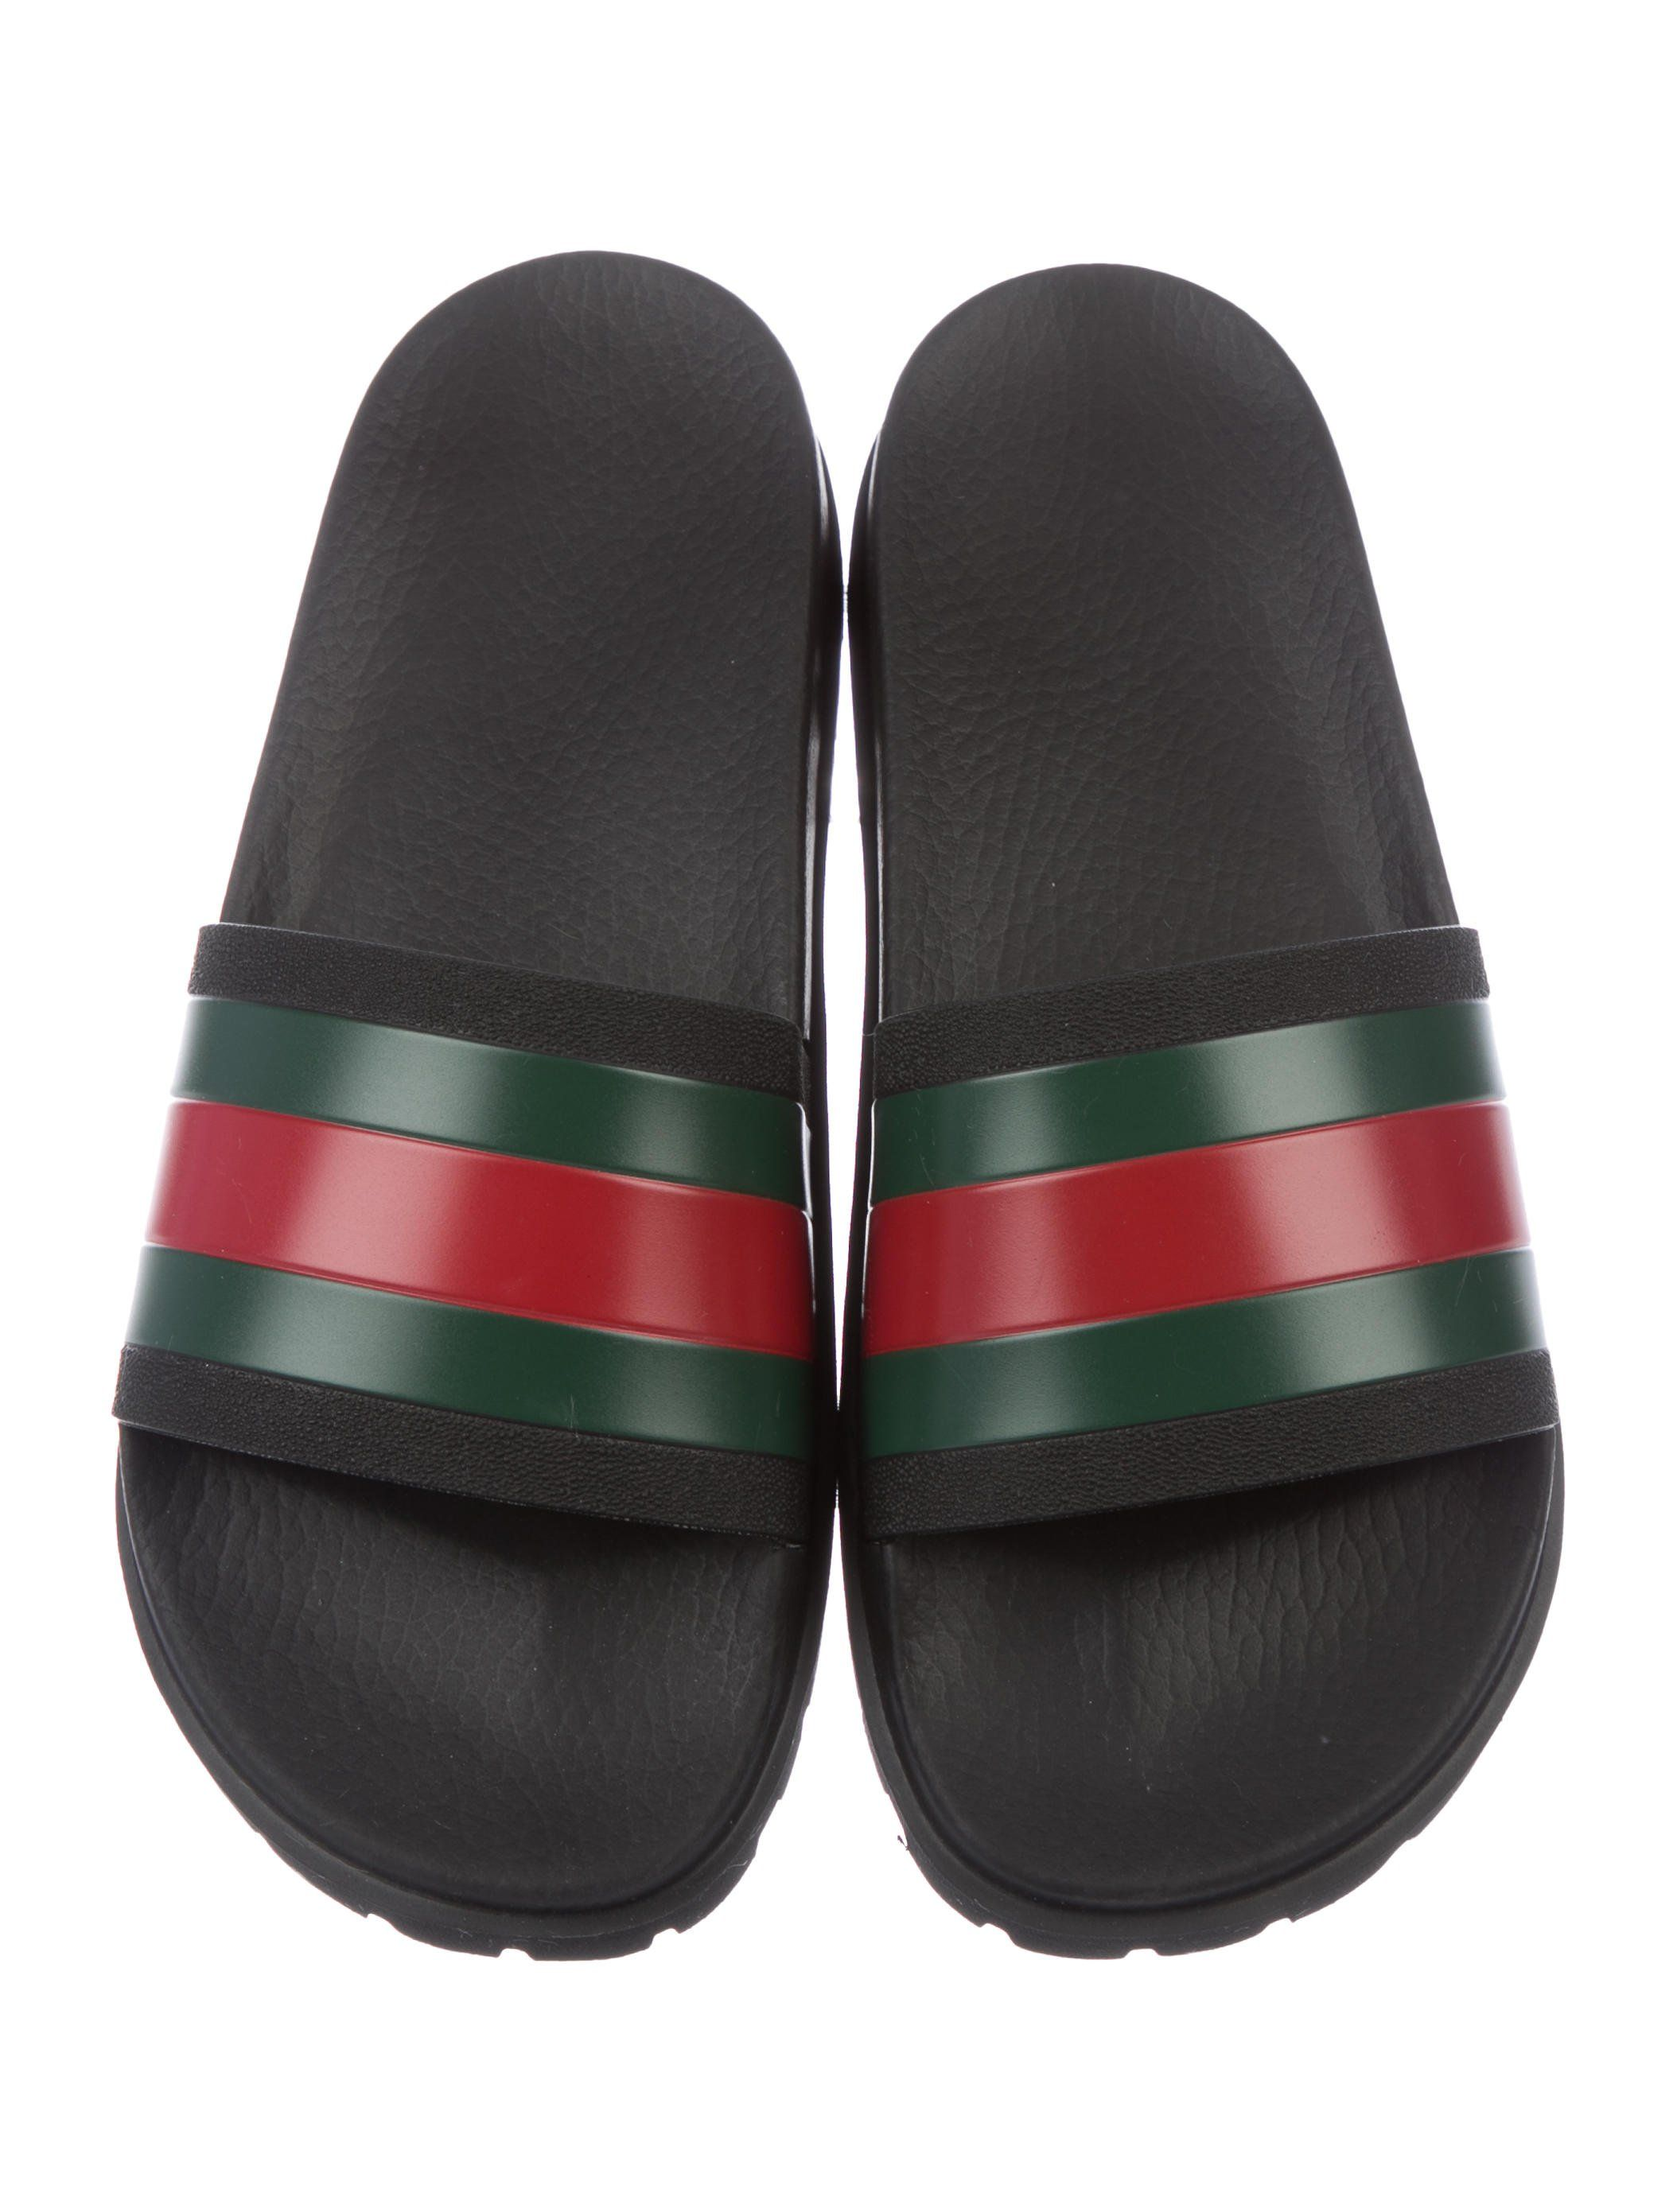 210bf4a77ad Black rubber Gucci slide sandals with red and green Web details at vamps  and rubber soles.